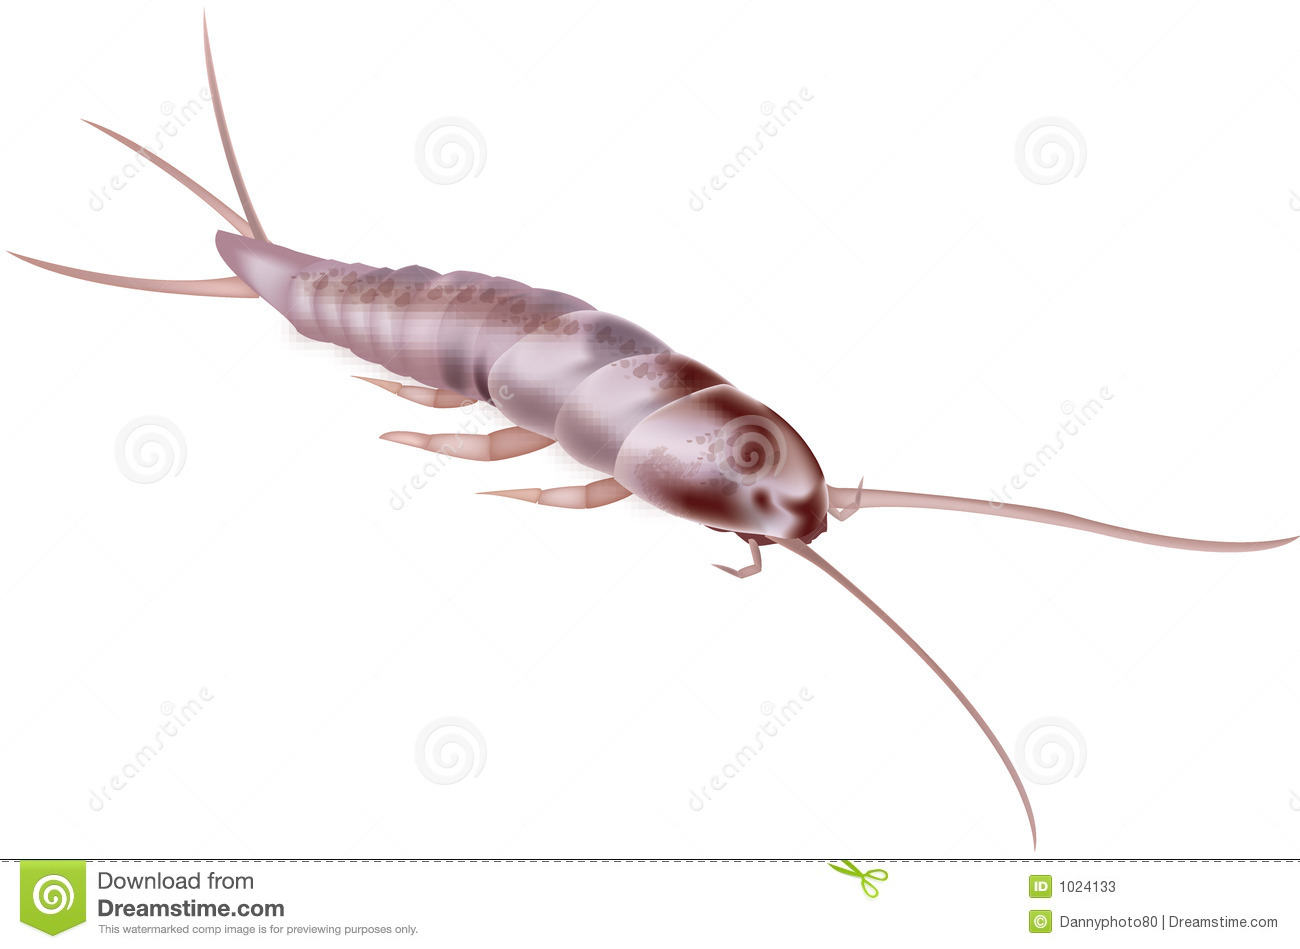 Clip Art of Silverfish.